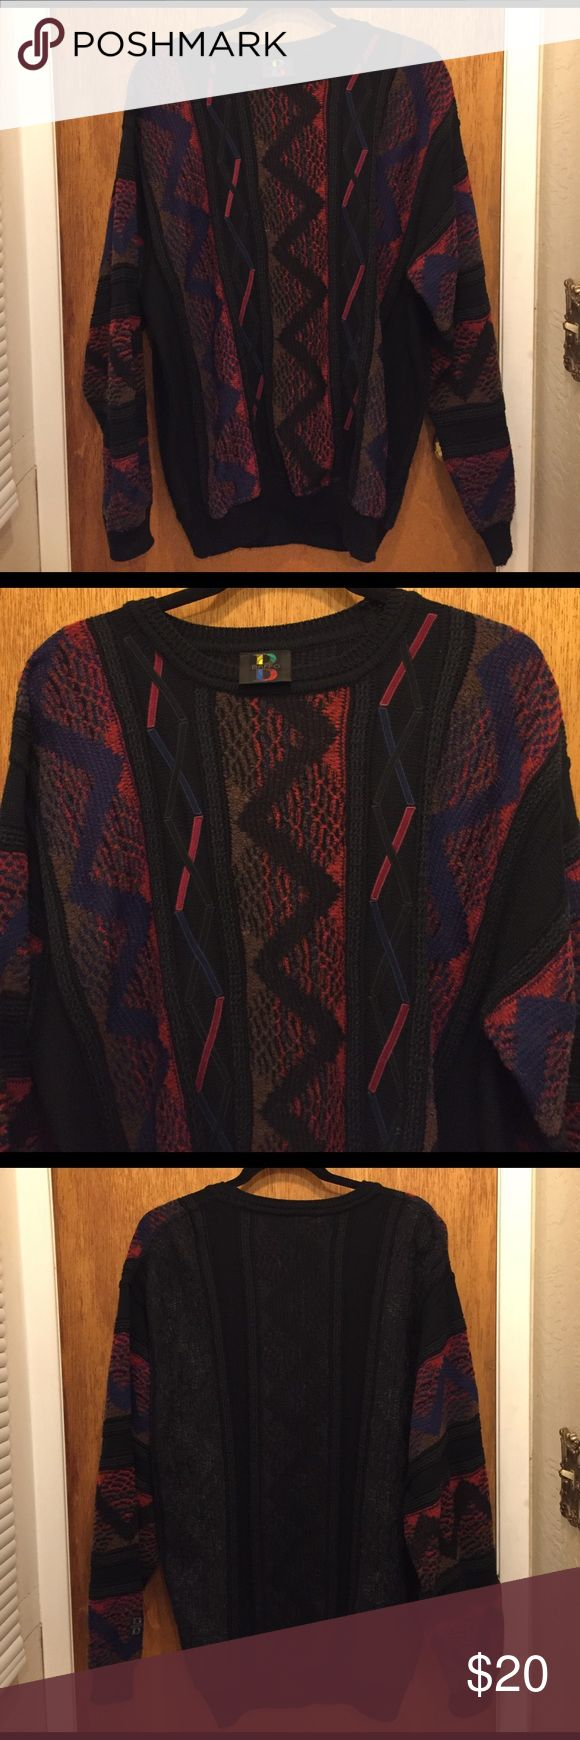 Vintage grandpa sweater Vintage oversized sweater with pink, blue, black, and brown design. Worn a few times, it's just too big for me. I recommend tucking it into light wash, high waisted jeans, with low bootie heels. It can just as easily be worn around the house with sweatpants though! Baffo Sweaters Crew & Scoop Necks